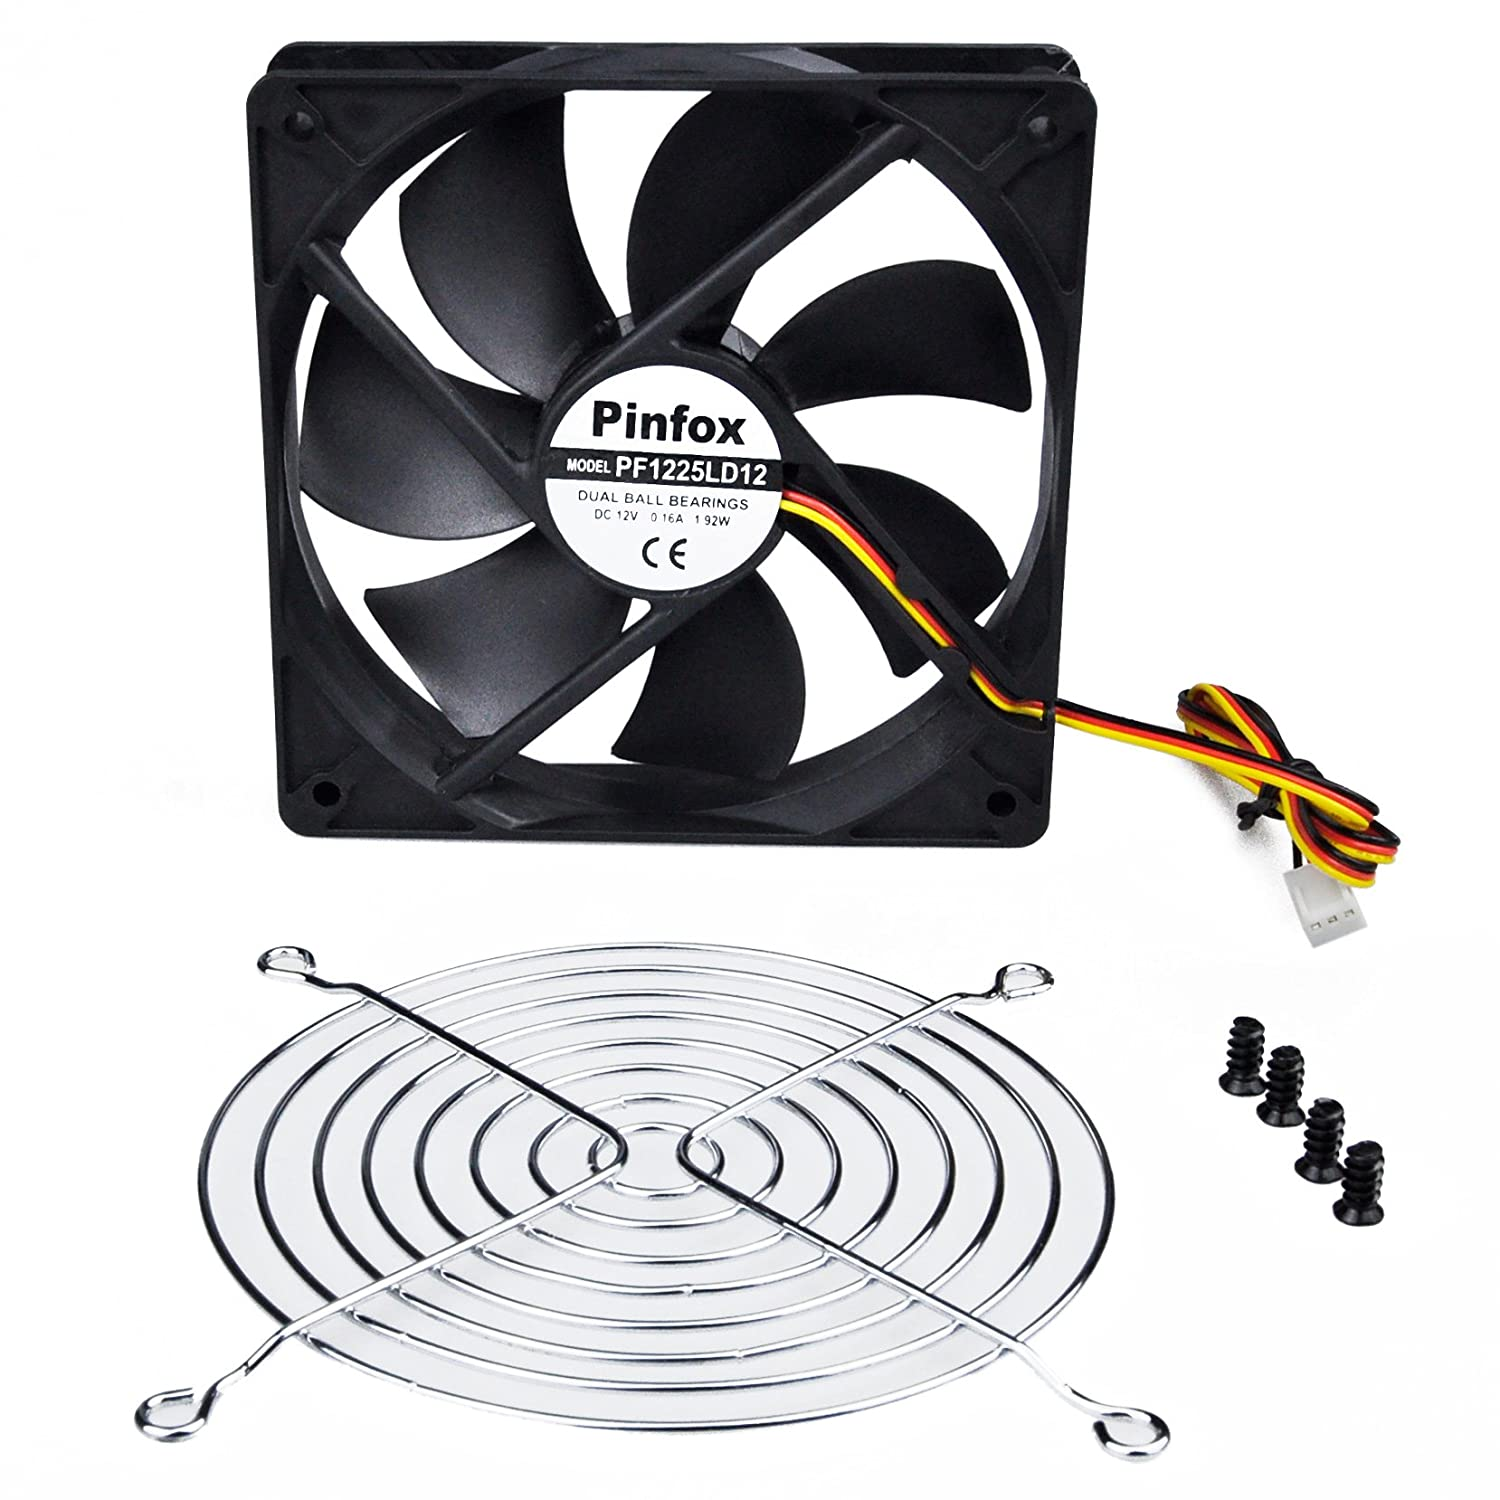 Pinfox 12v Dc 120mm Quiet Cooling Fan Variable Speed Electric Wiring Kit Adjustable Probe Style Control By 5v To Input Dual Ball Bearings 3 Pin For Pc Computer Case Home Theater